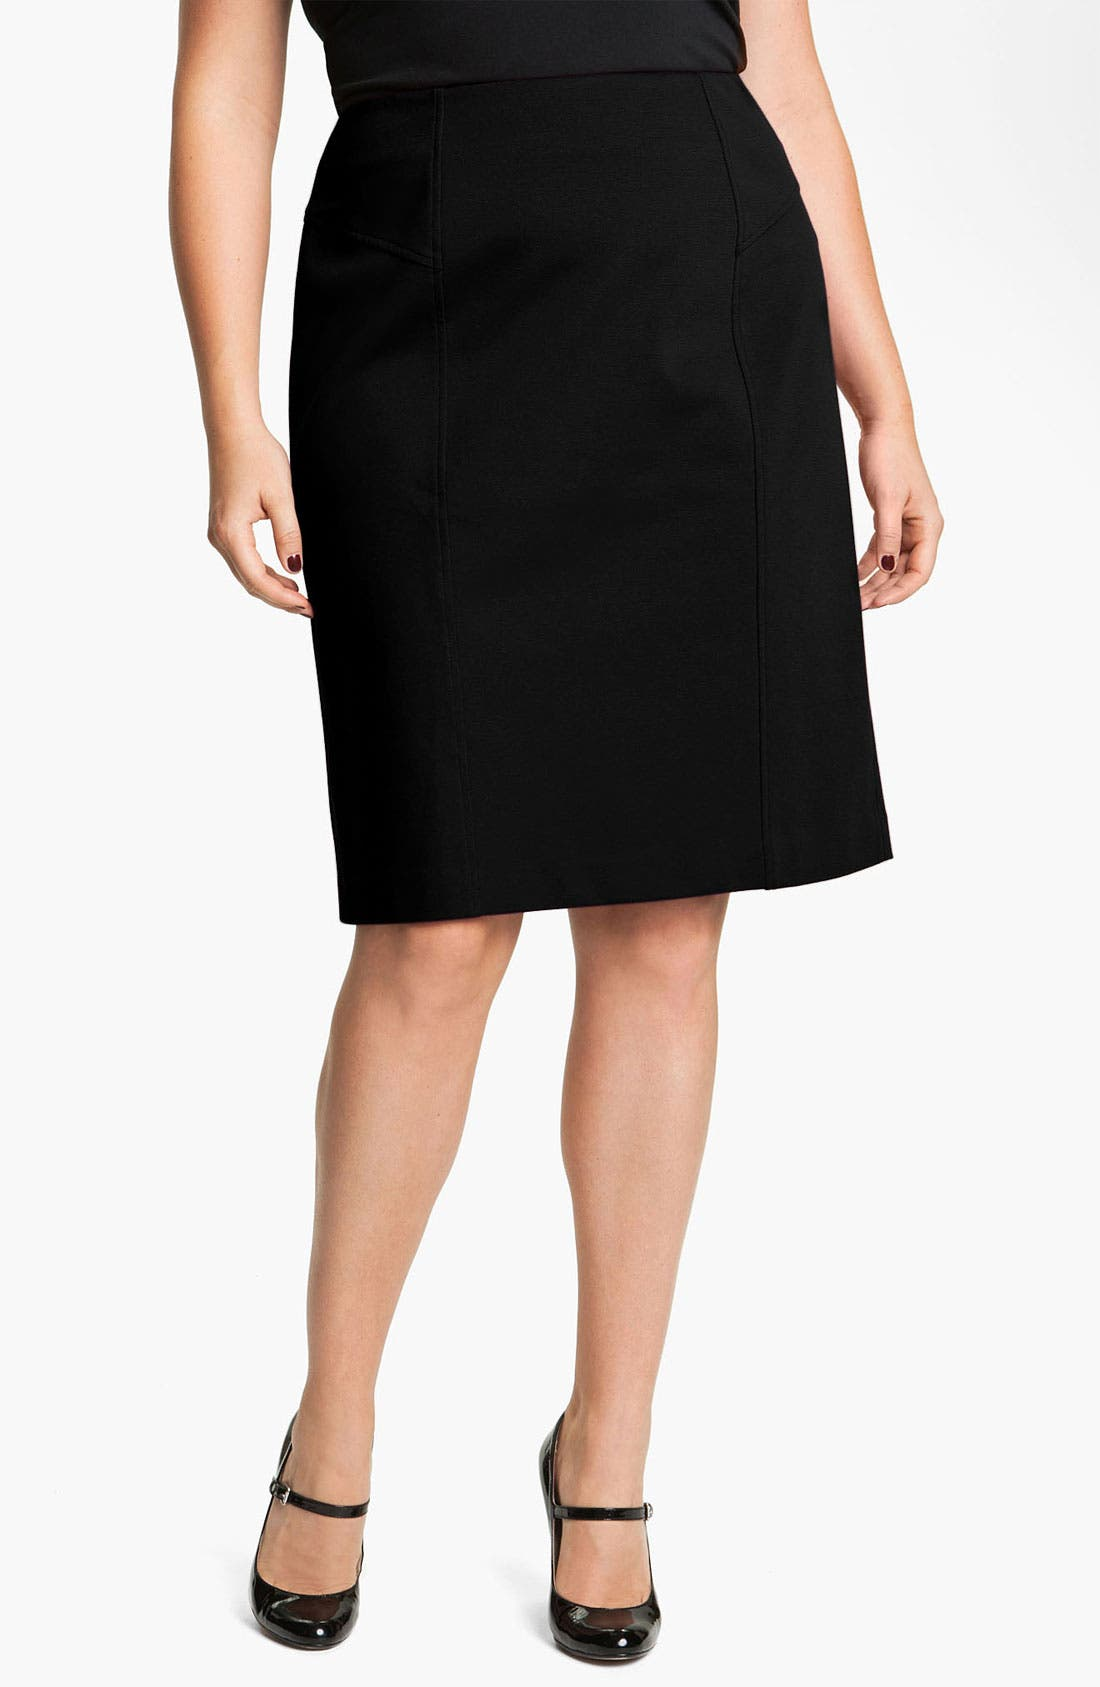 Alternate Image 1 Selected - Sejour Seamed Ponte Knit Skirt (Plus)